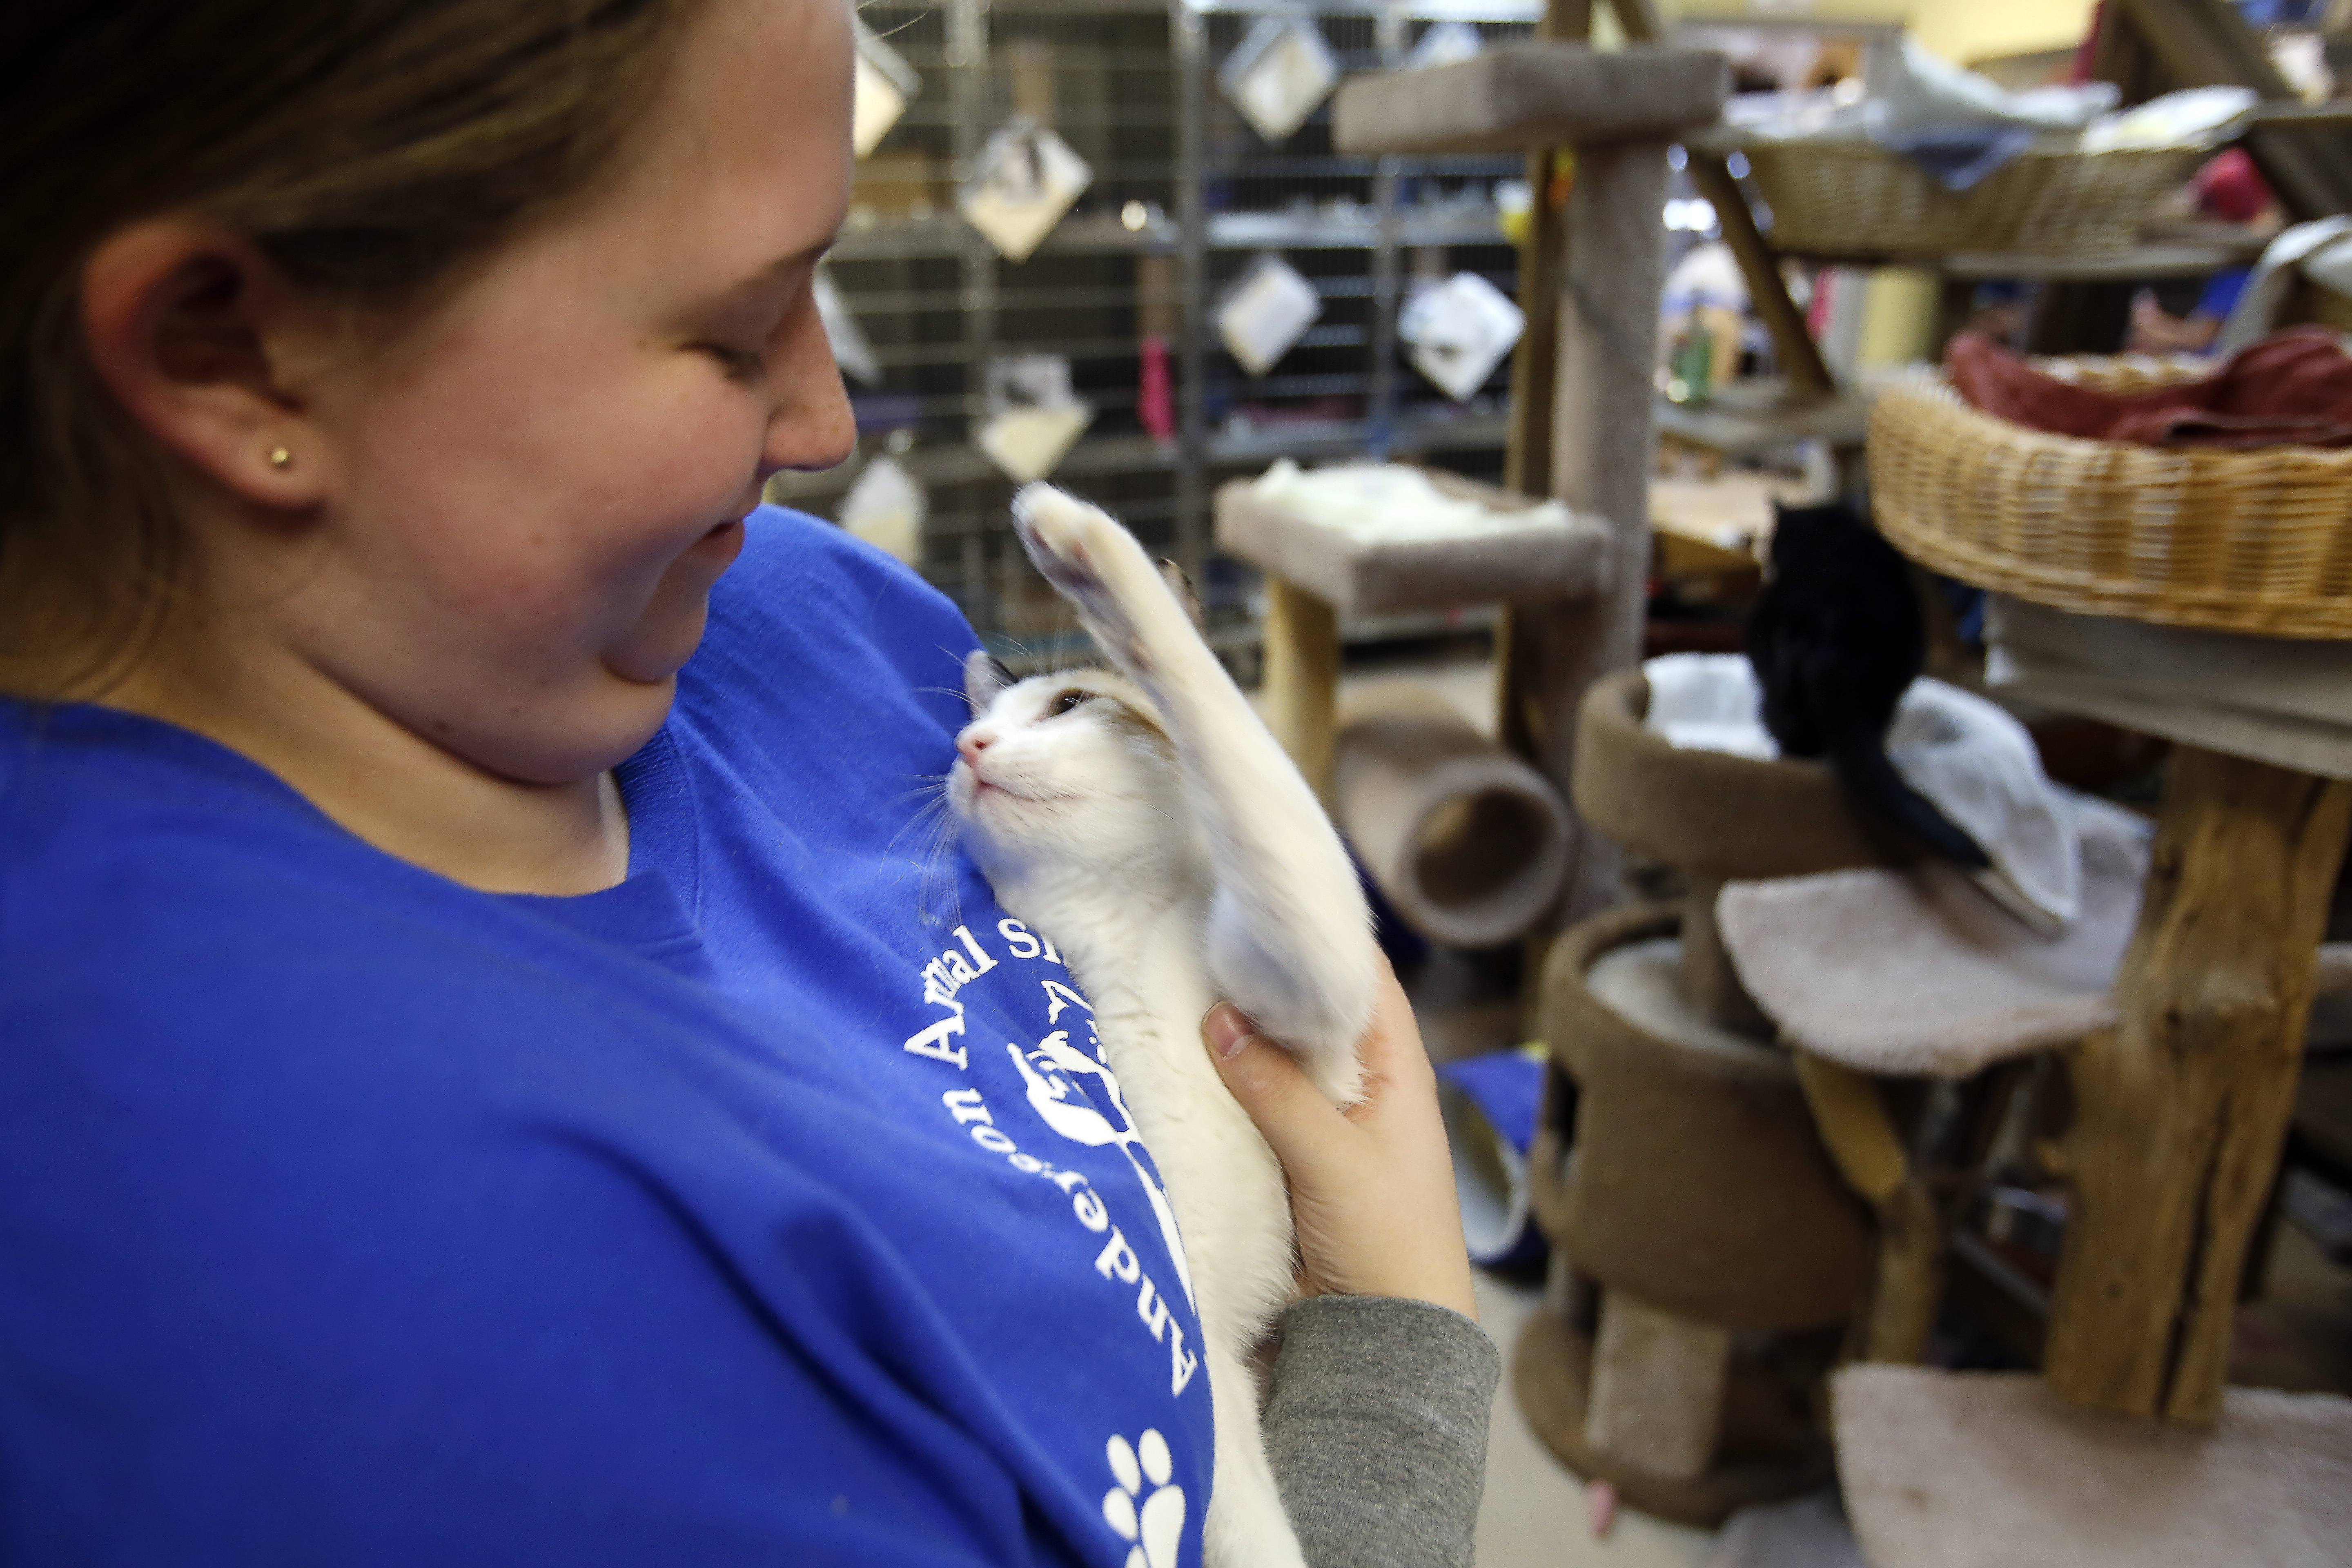 "Alexis Murr, 15, of West Dundee, shares a moment with one of the cats she visits while regularly volunteering at Anderson Animal Shelter in South Elgin. ""I just love animals and want to be a veterinarian when I grow up,"" she said."